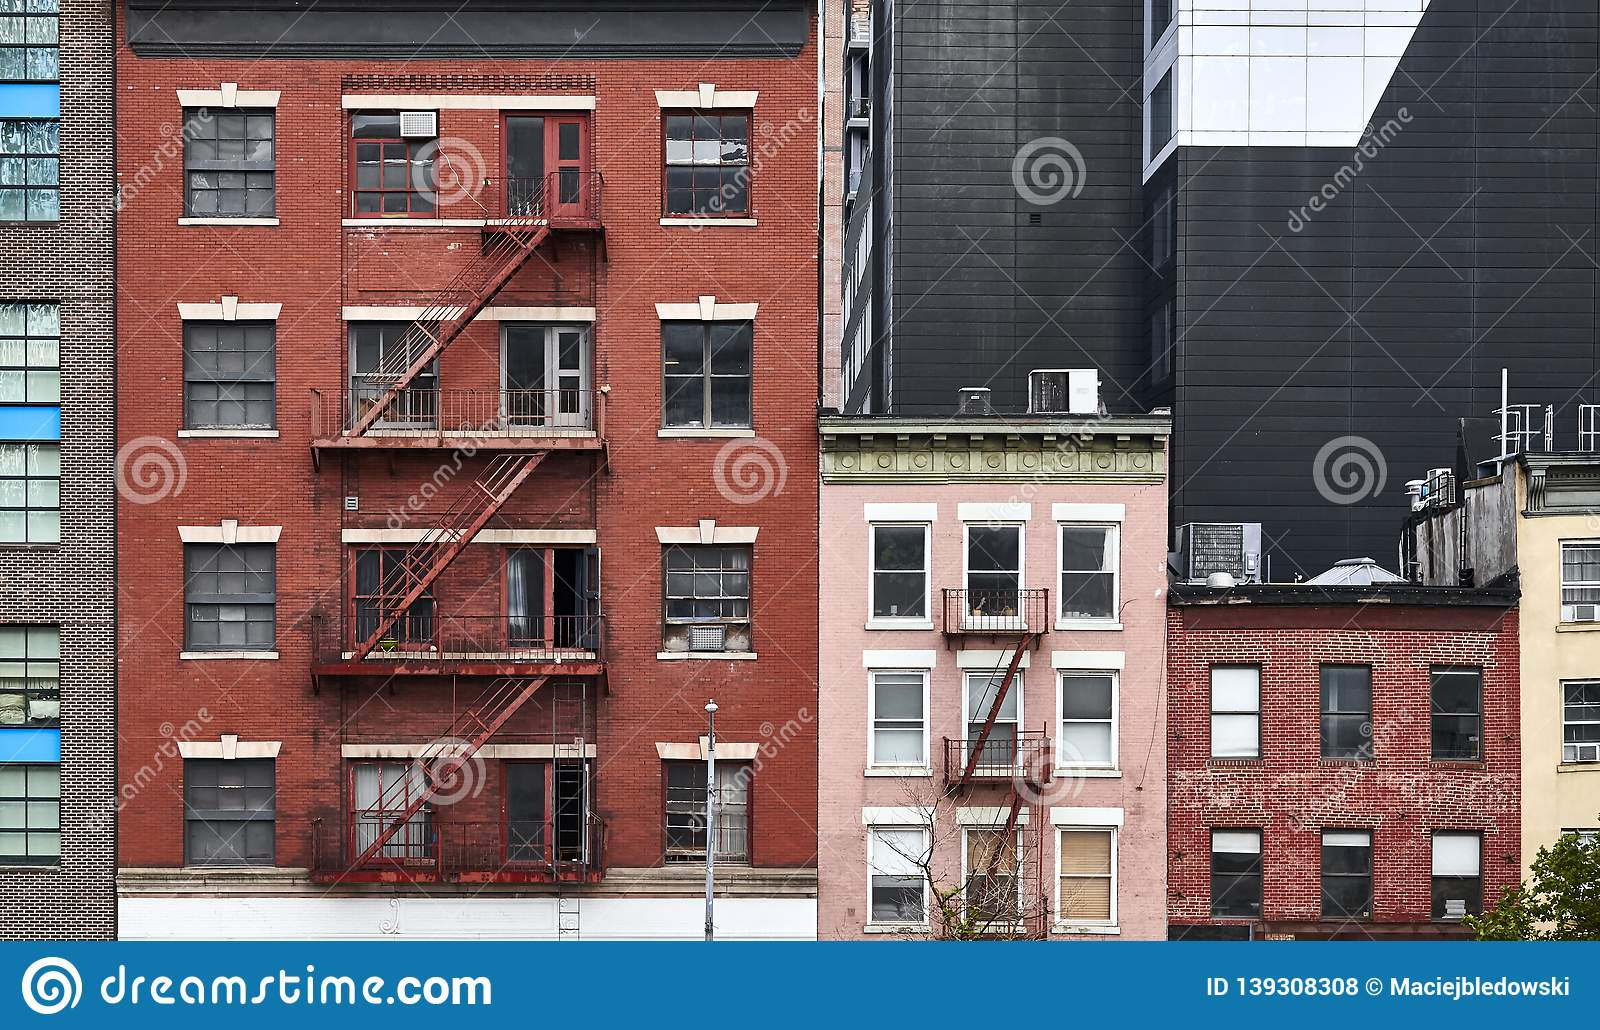 Old tenement houses with fire escapes in New York